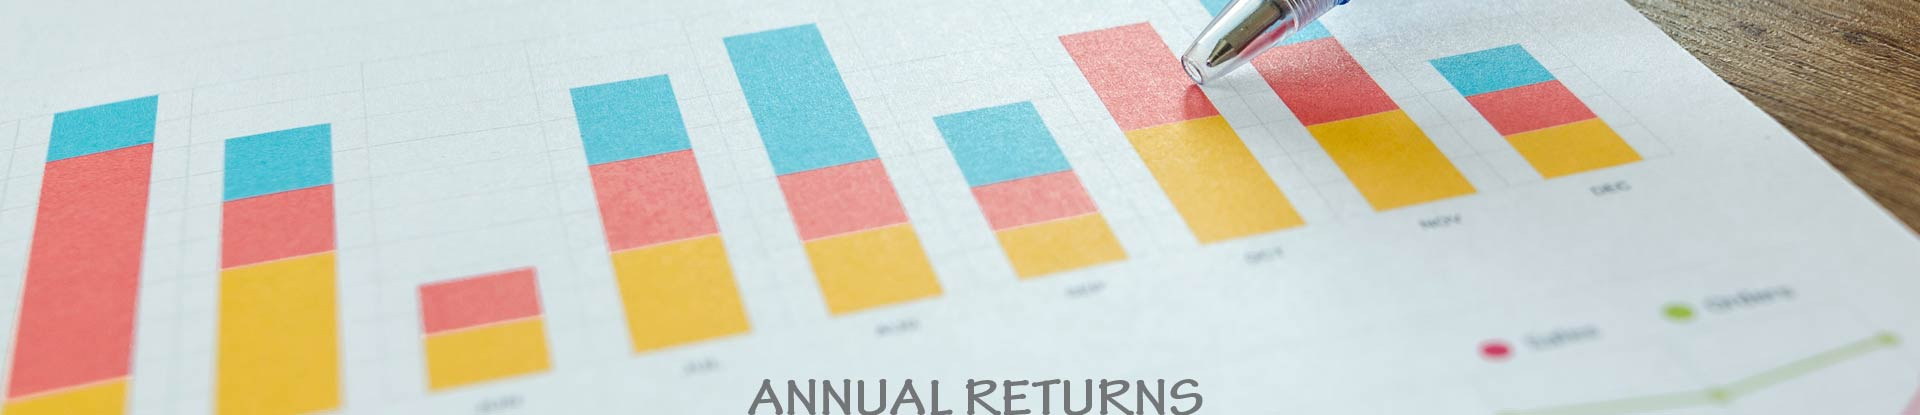 Annual Returns | Captain Polyplast Ltd.